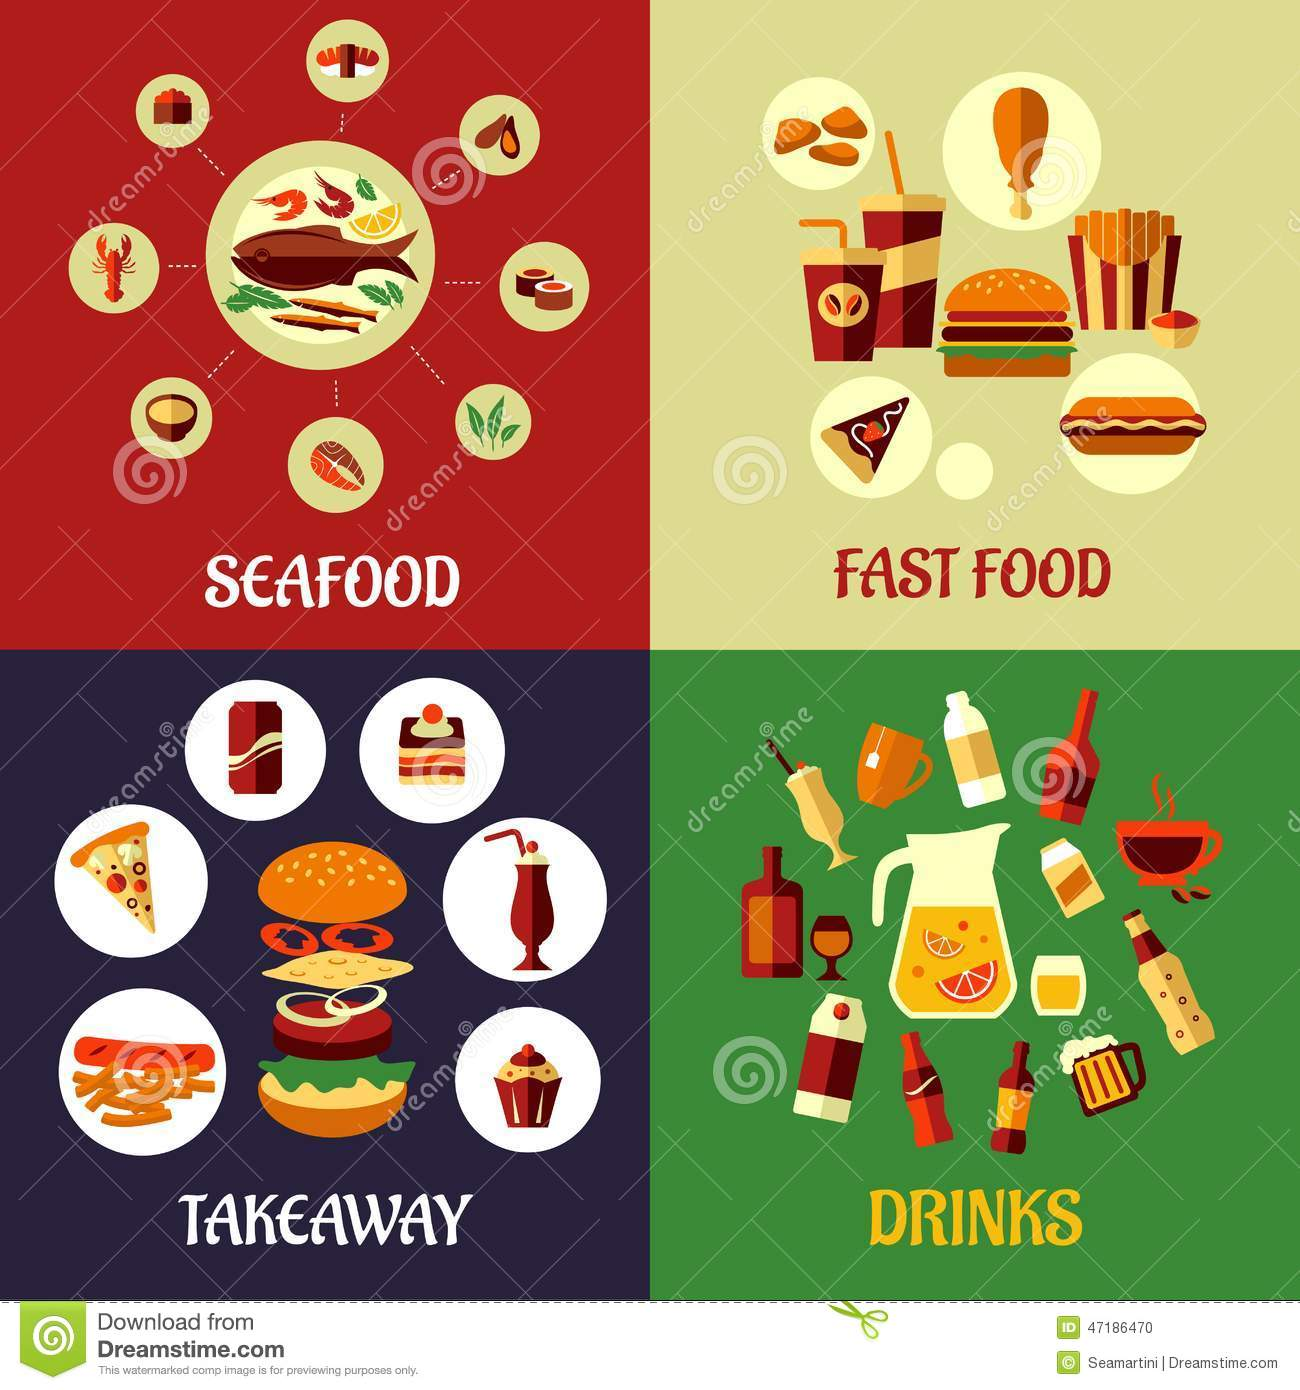 Seafood fast food and drinks flat icons stock vector